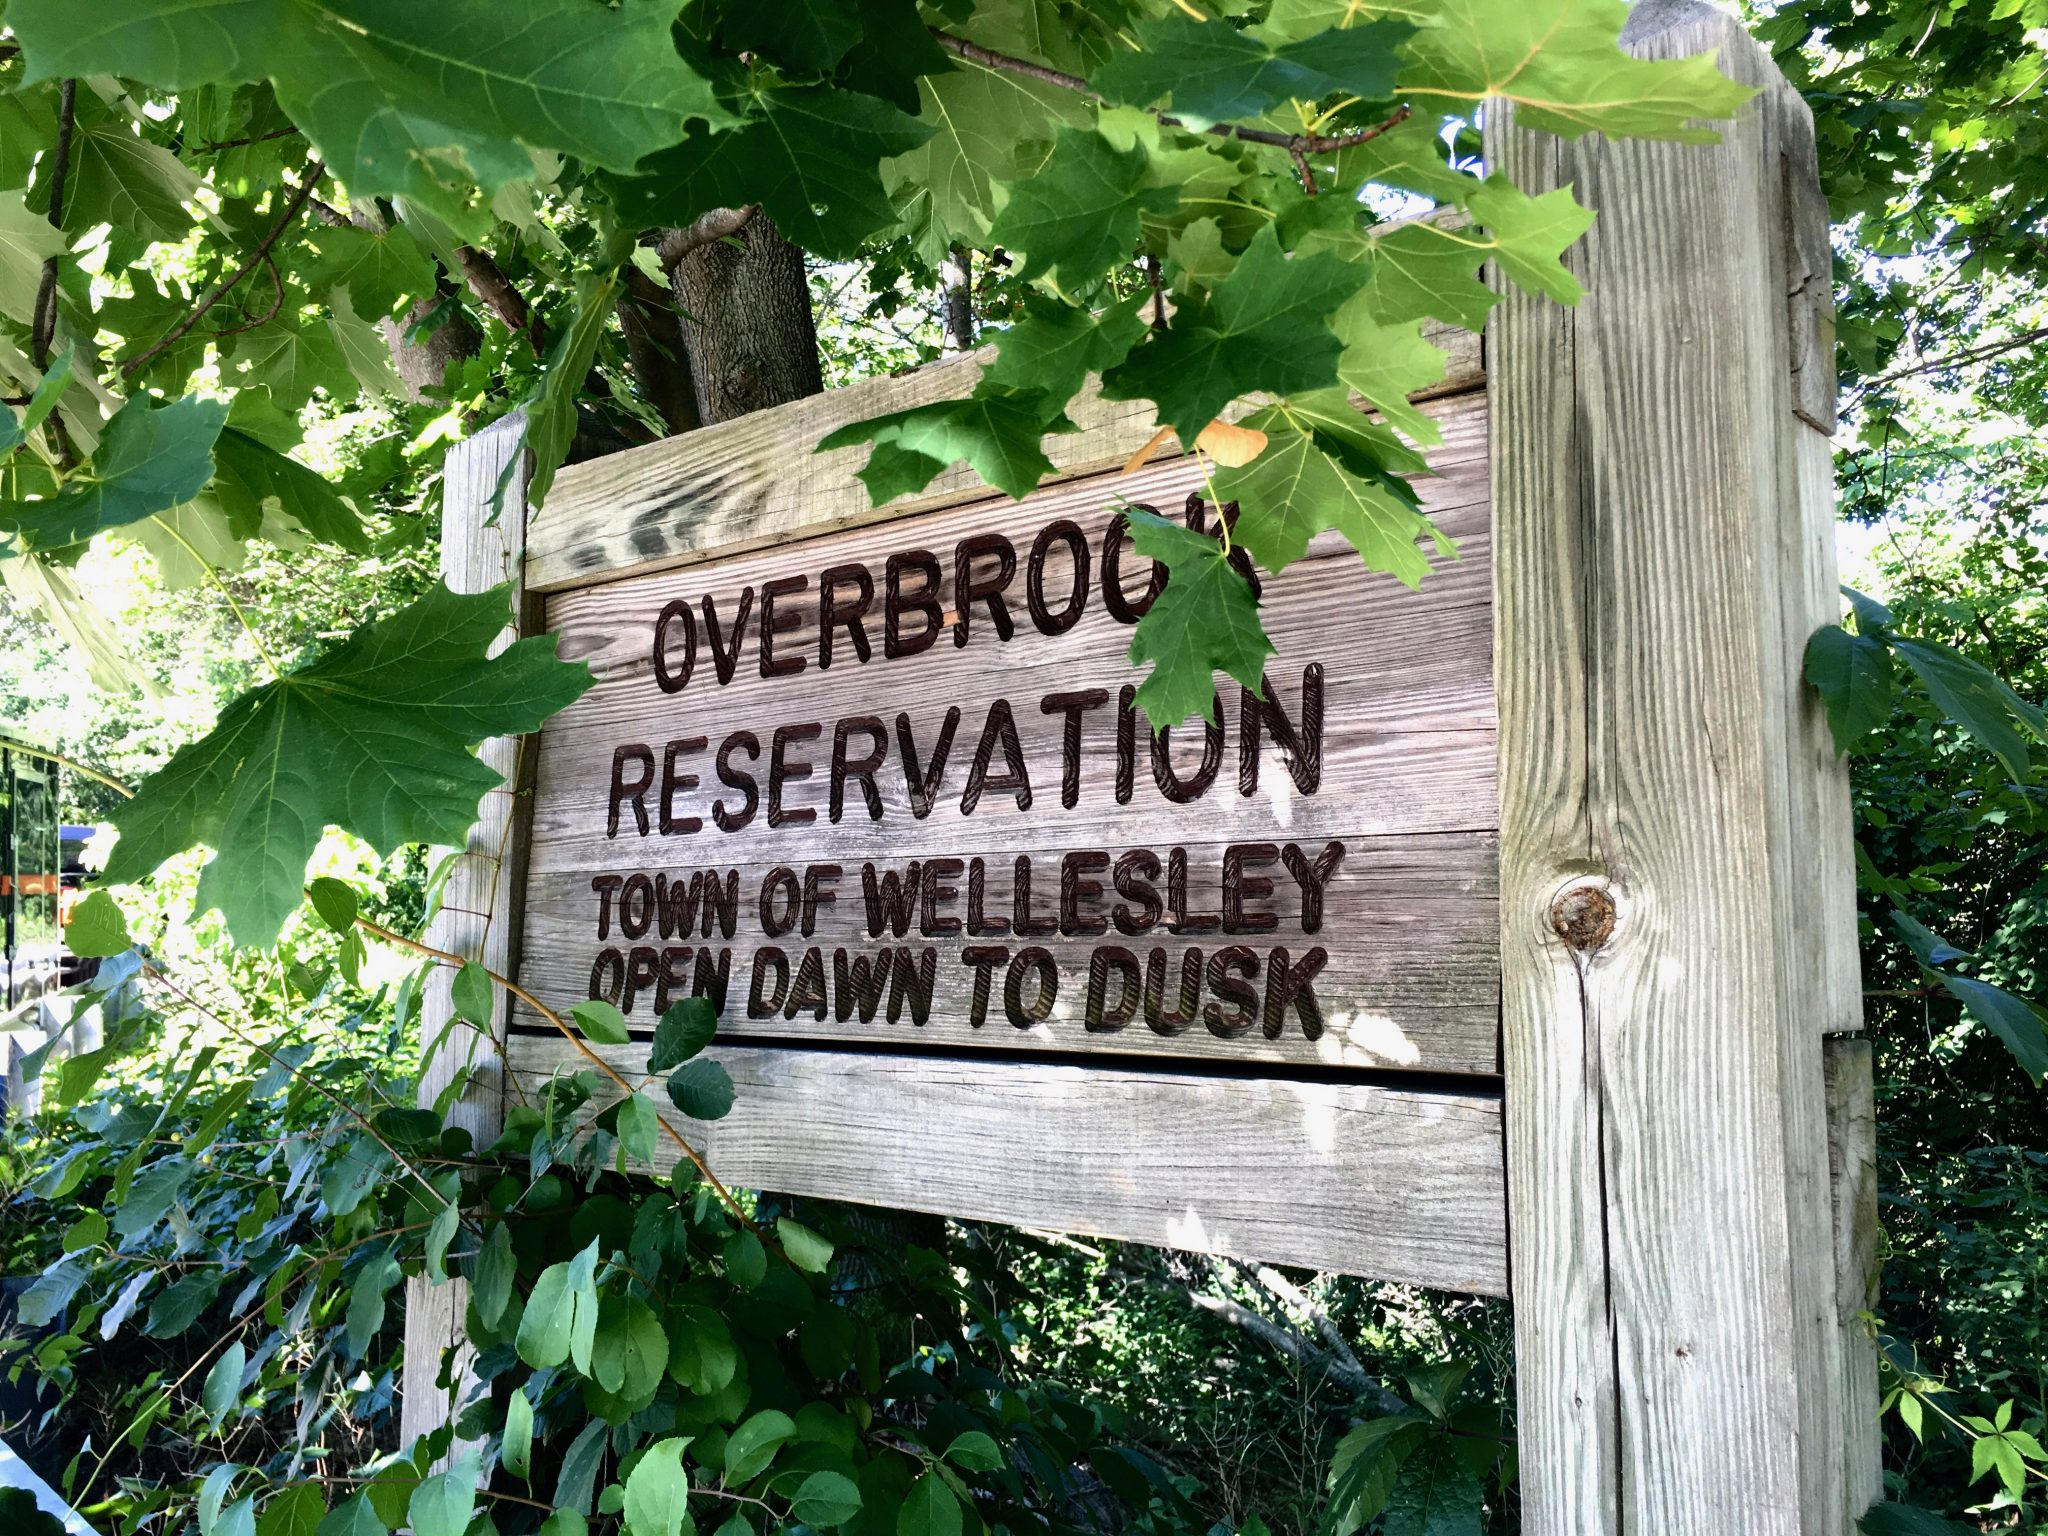 Overbrook Reservation, Wellesley